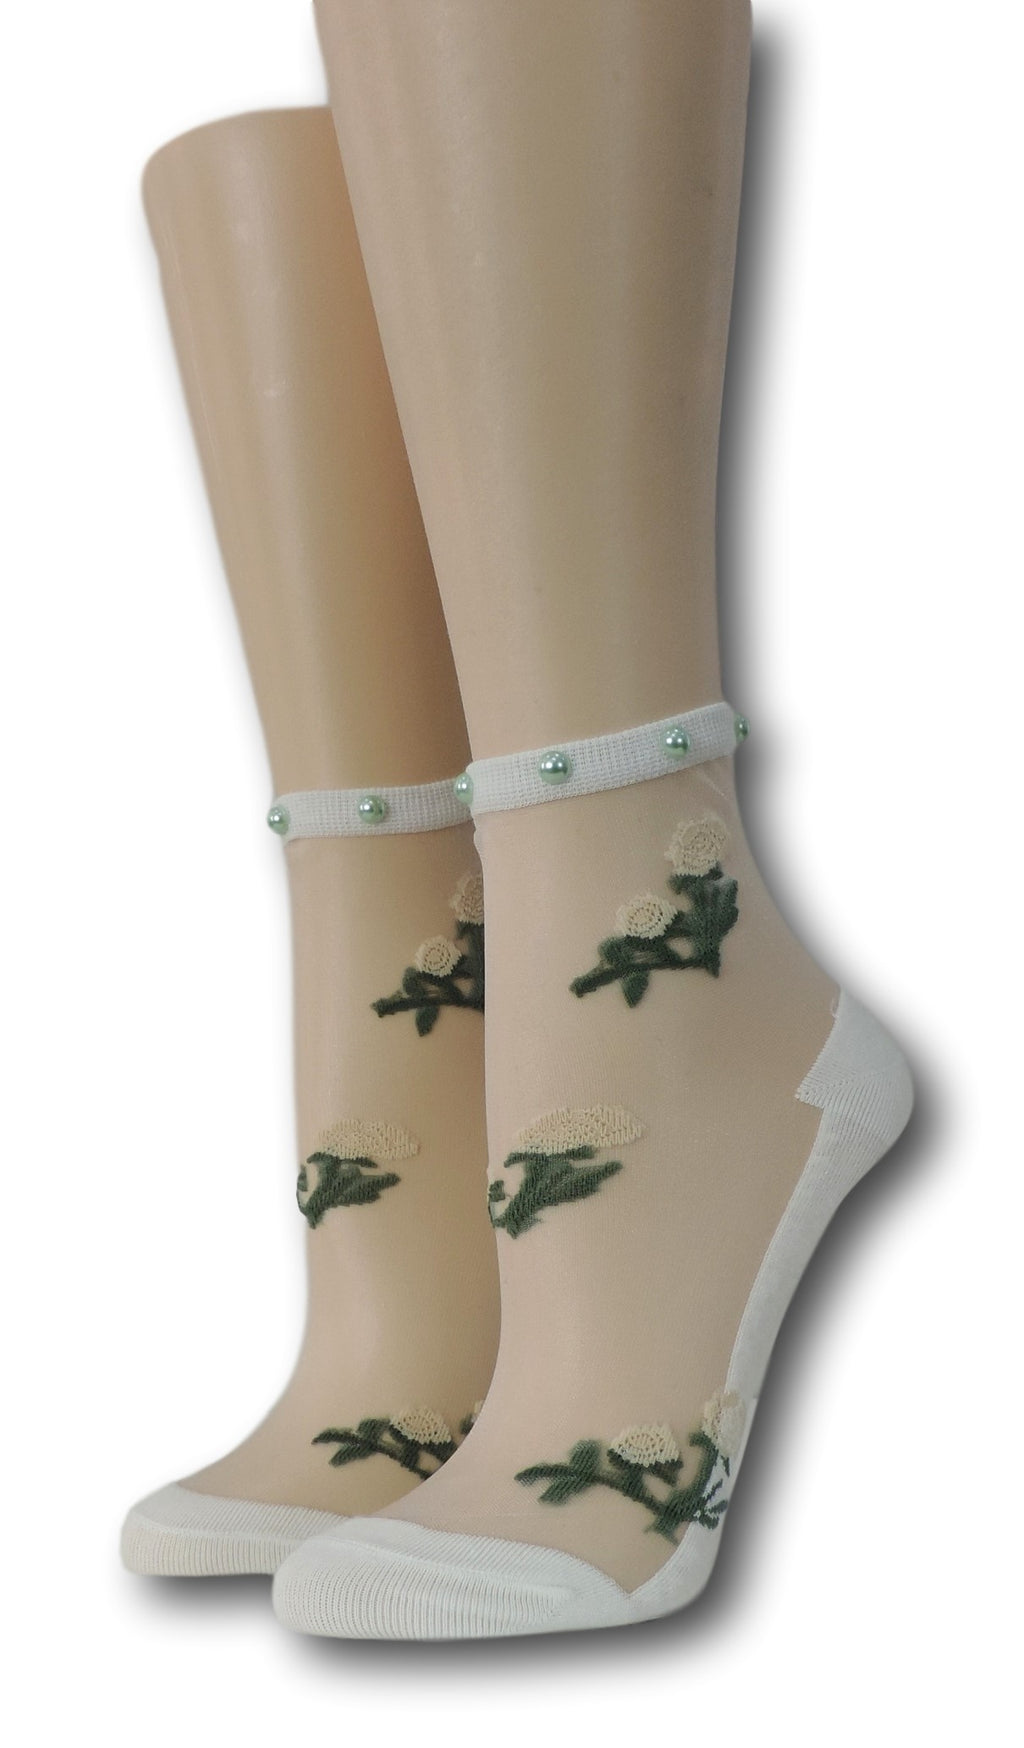 White Floret Sheer Socks with beads